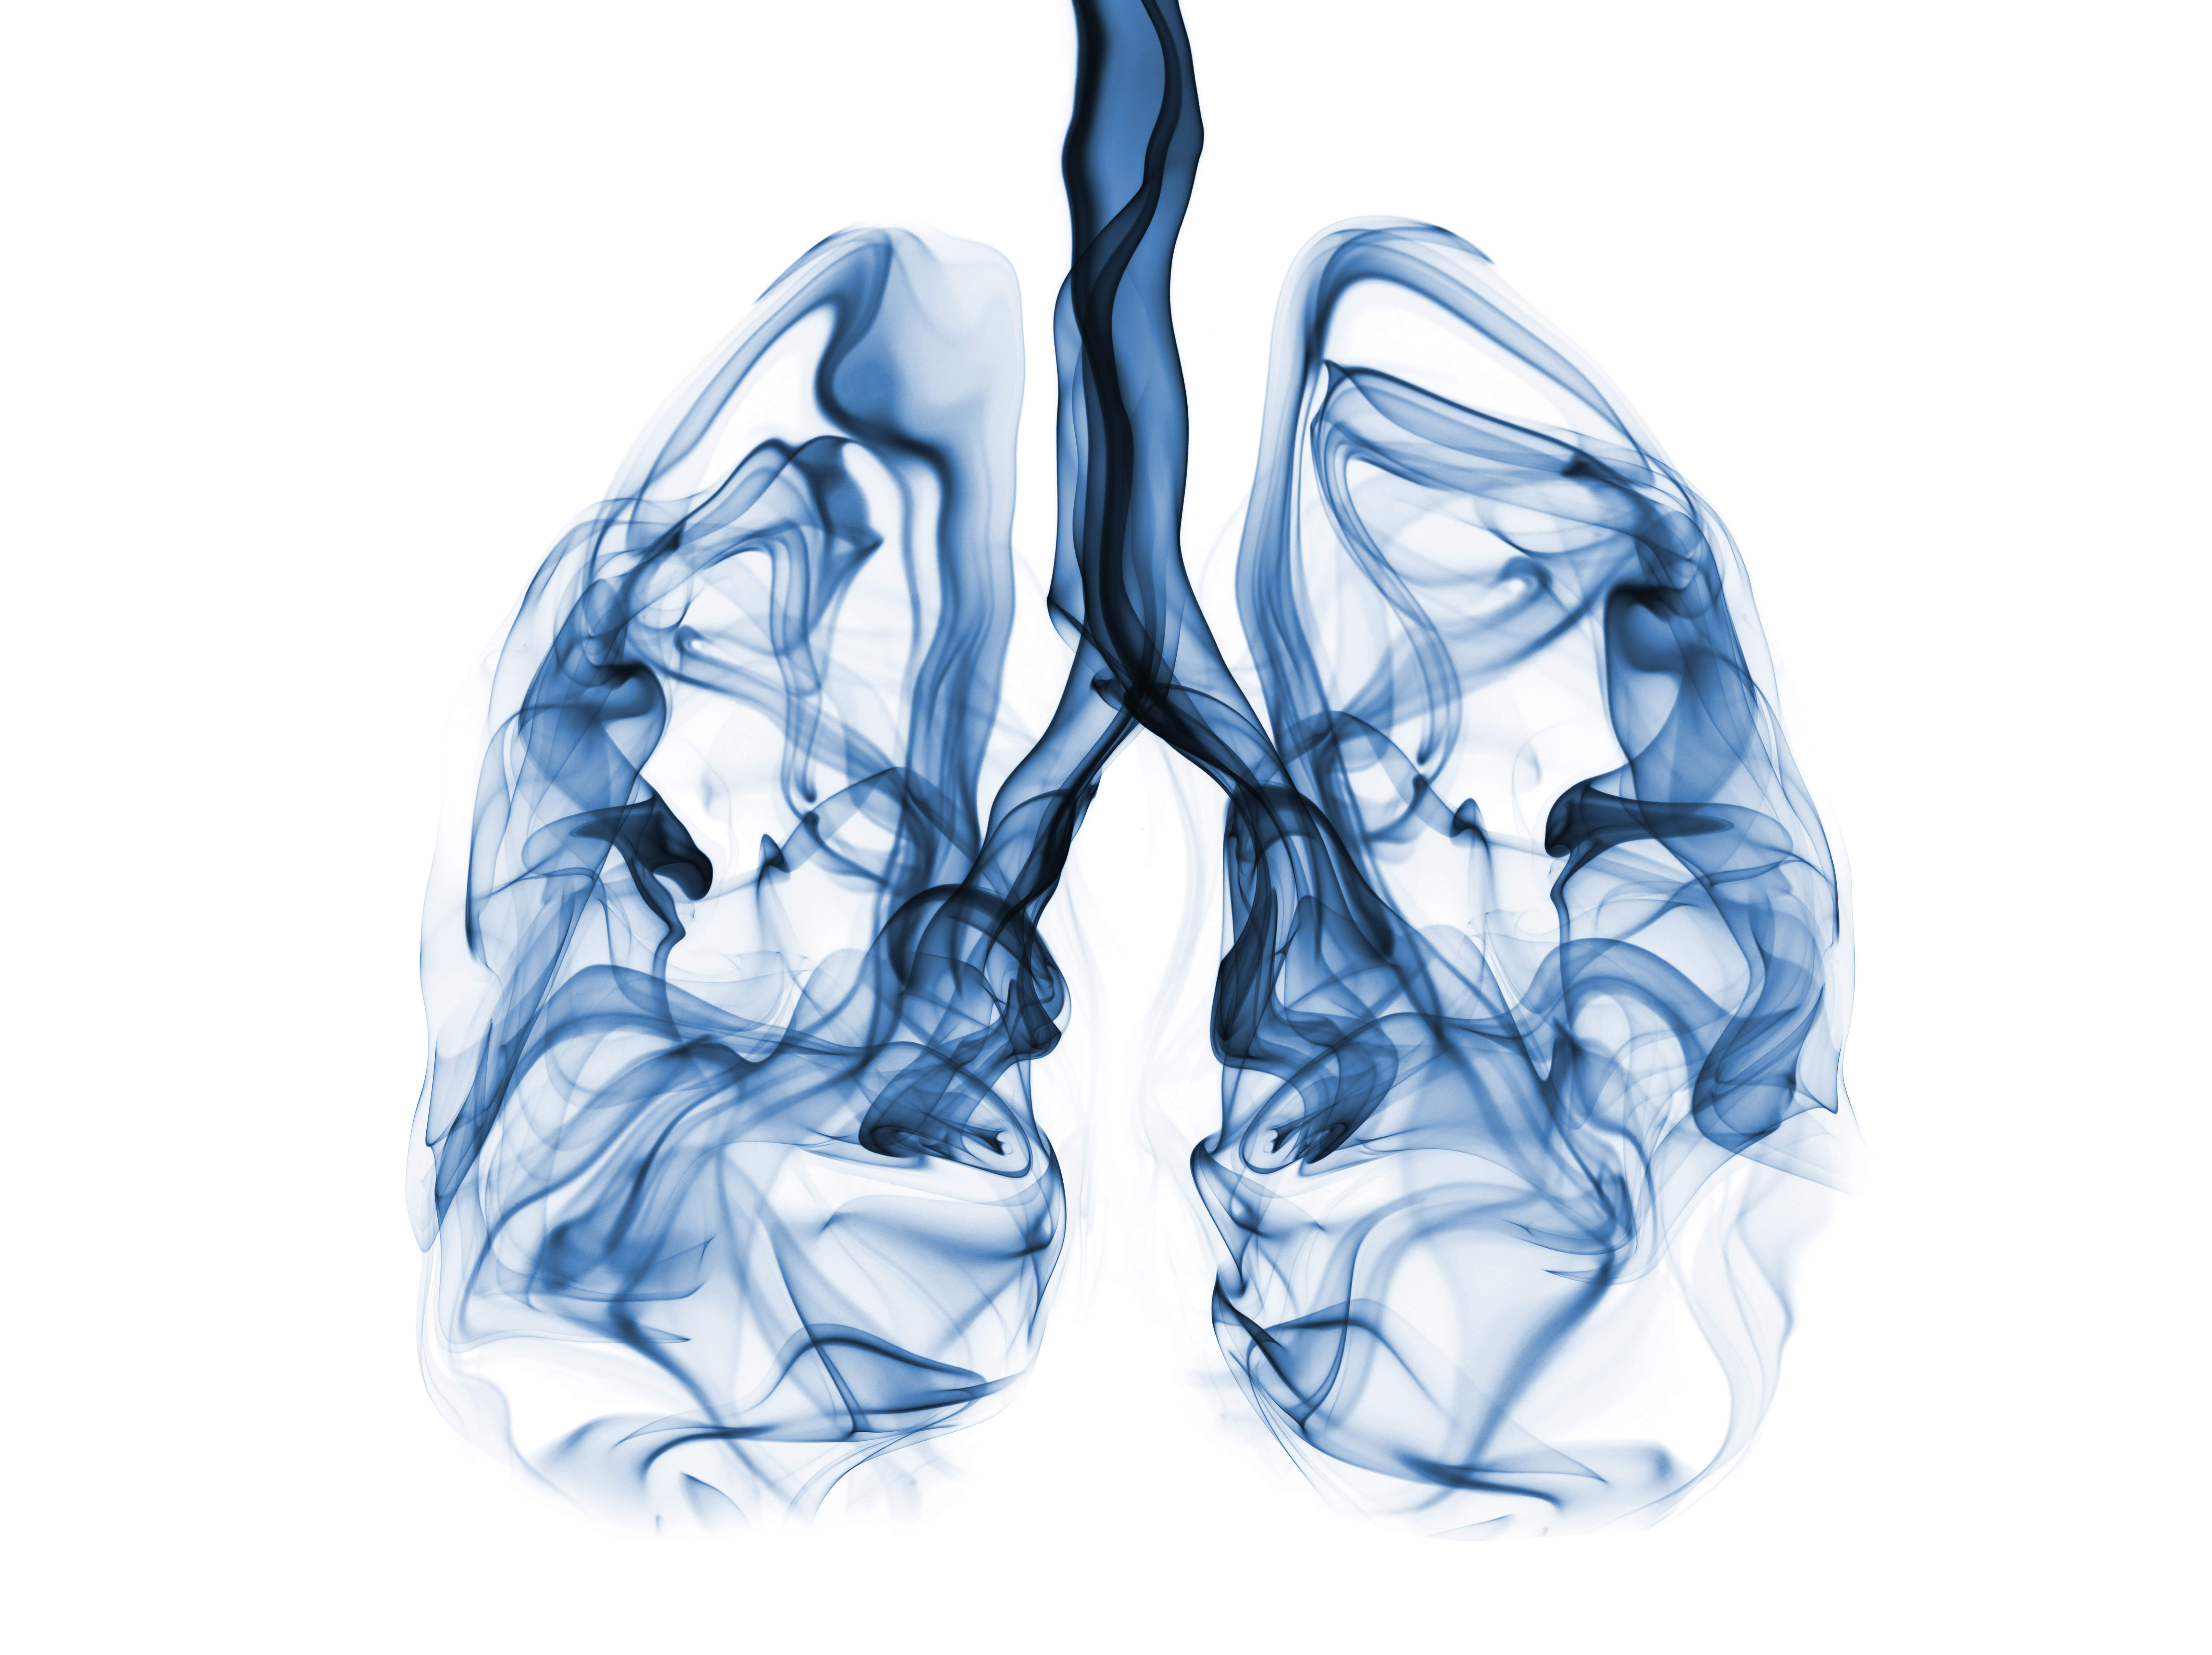 Fumes pollution chemicals filling up lung shape